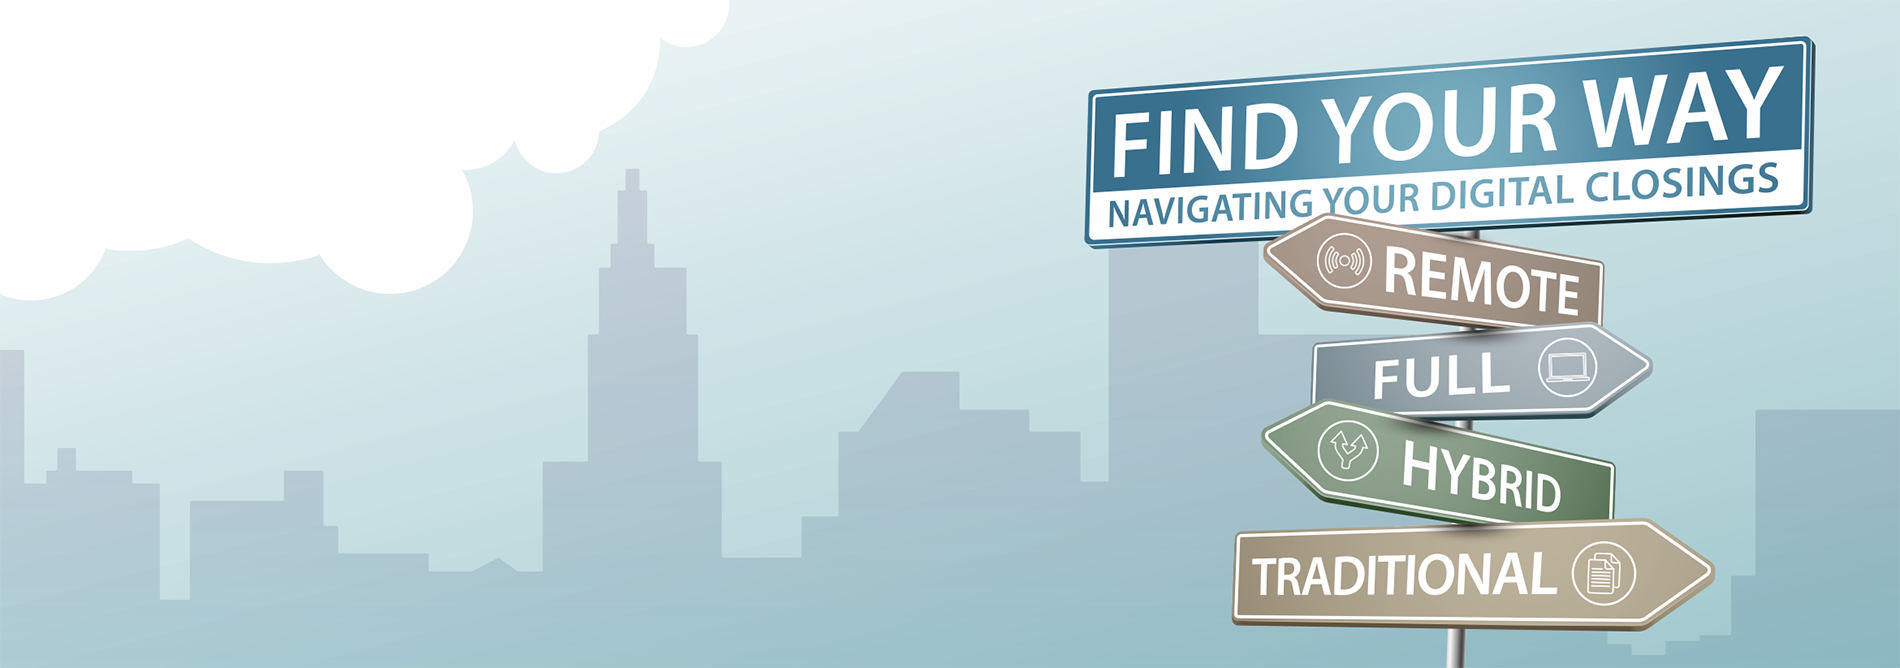 Eways - Find Your Way. Navigating your digital closings.